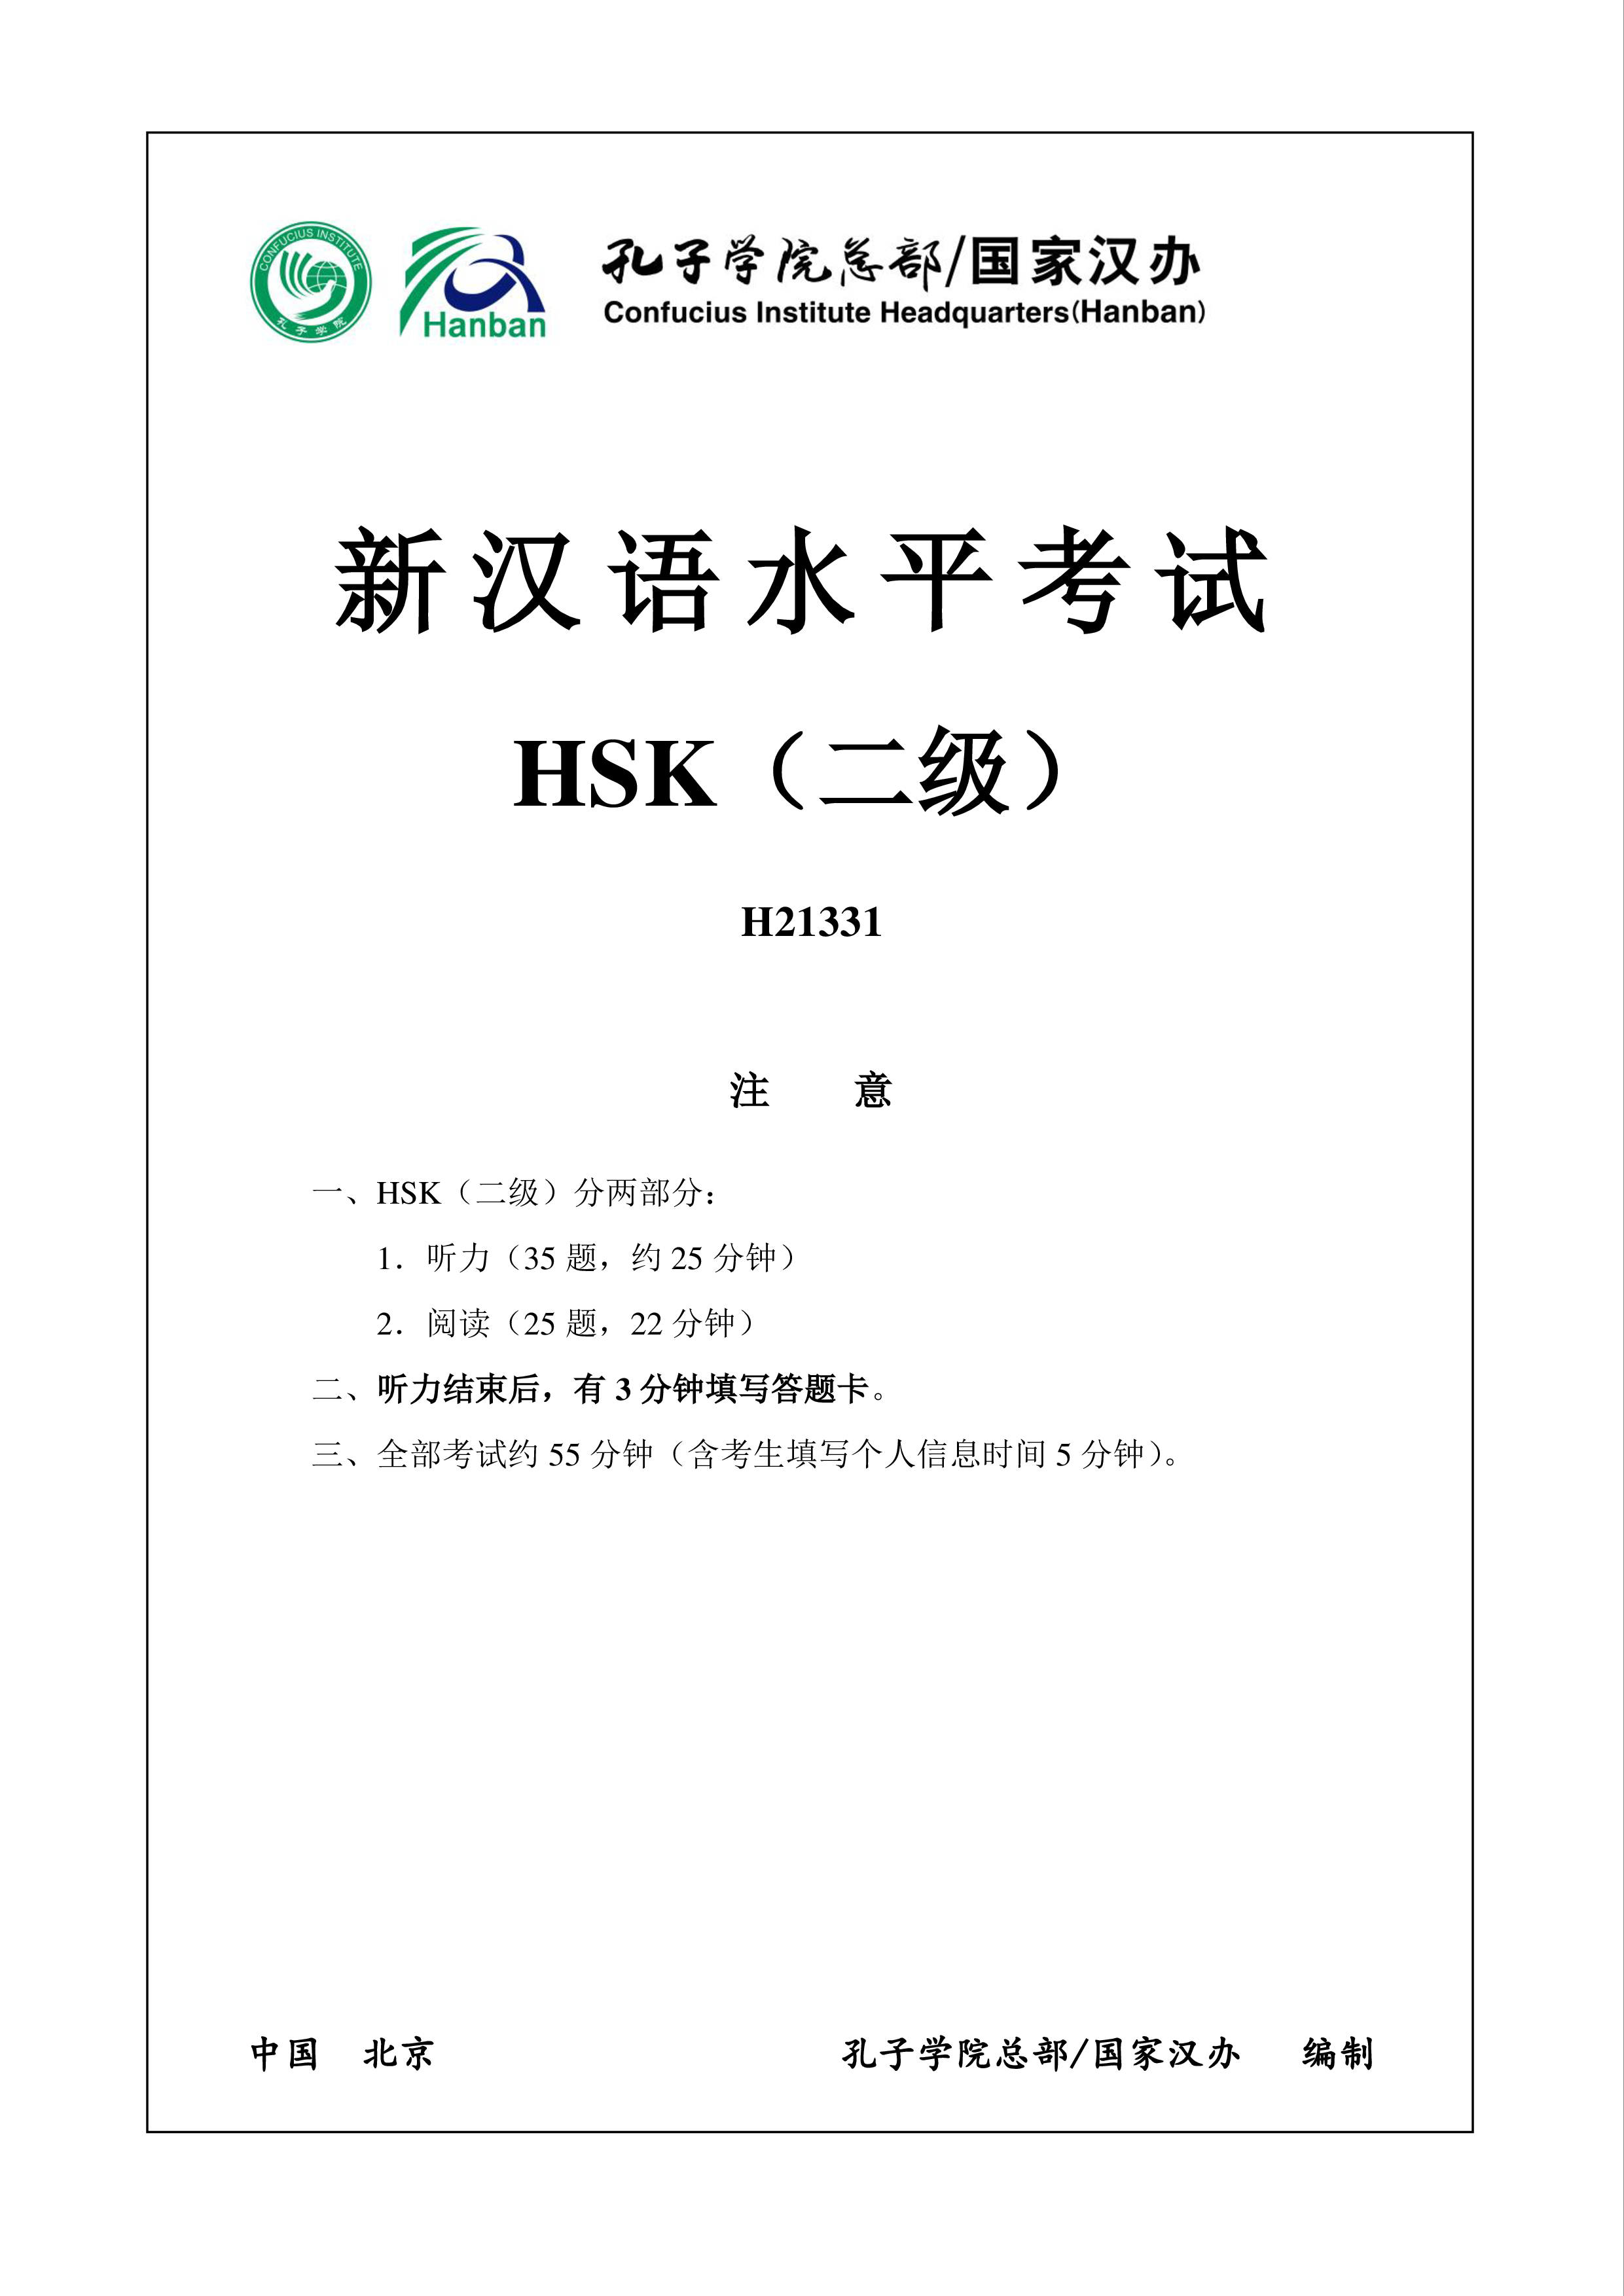 HSK2 Chinese Exam including Answers # HSK2 H21331 main image